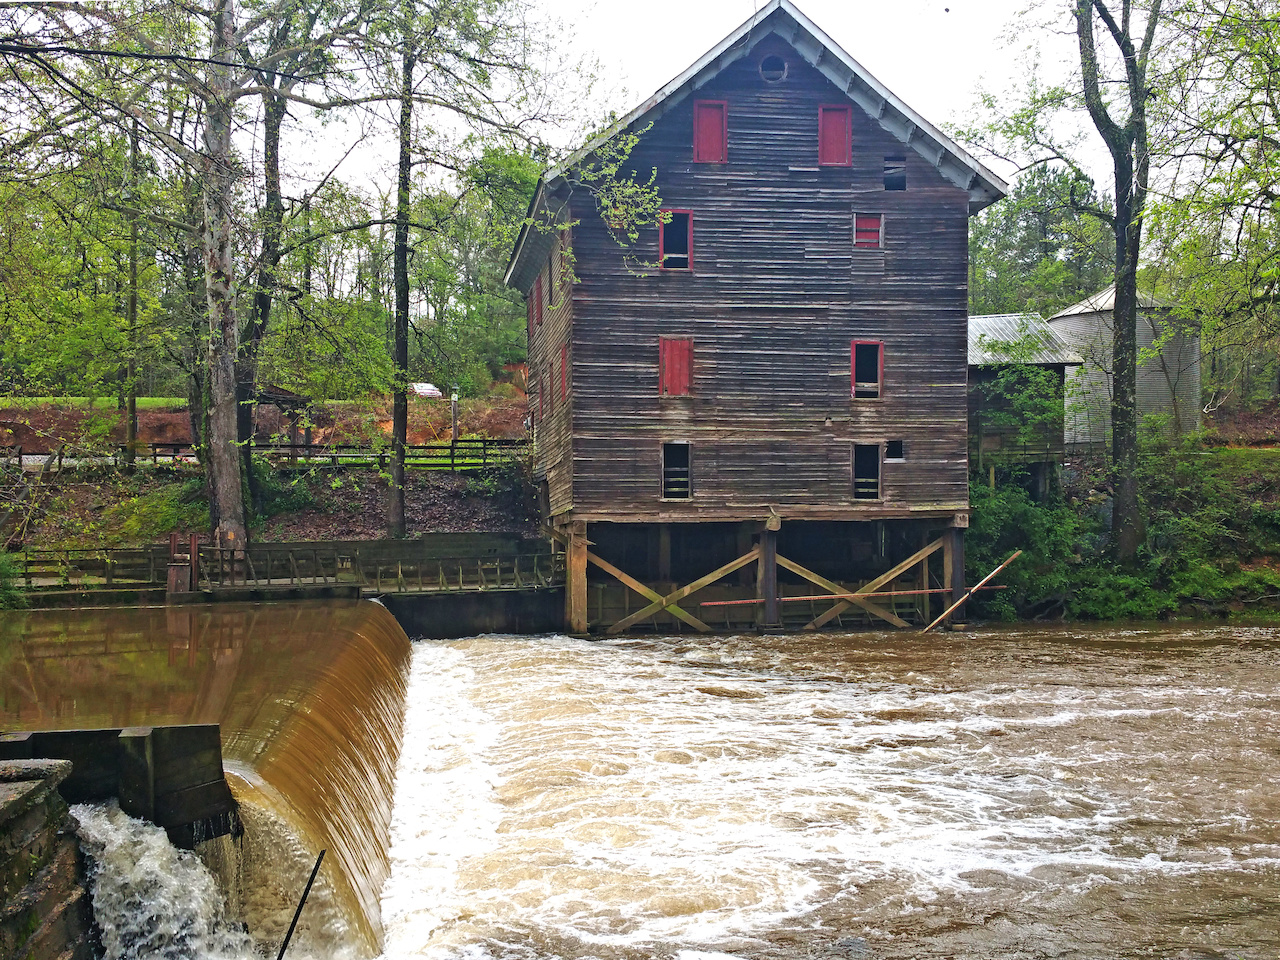 The Kymulga Grist Mill is part of this scenic enclave and was in operation until recently.